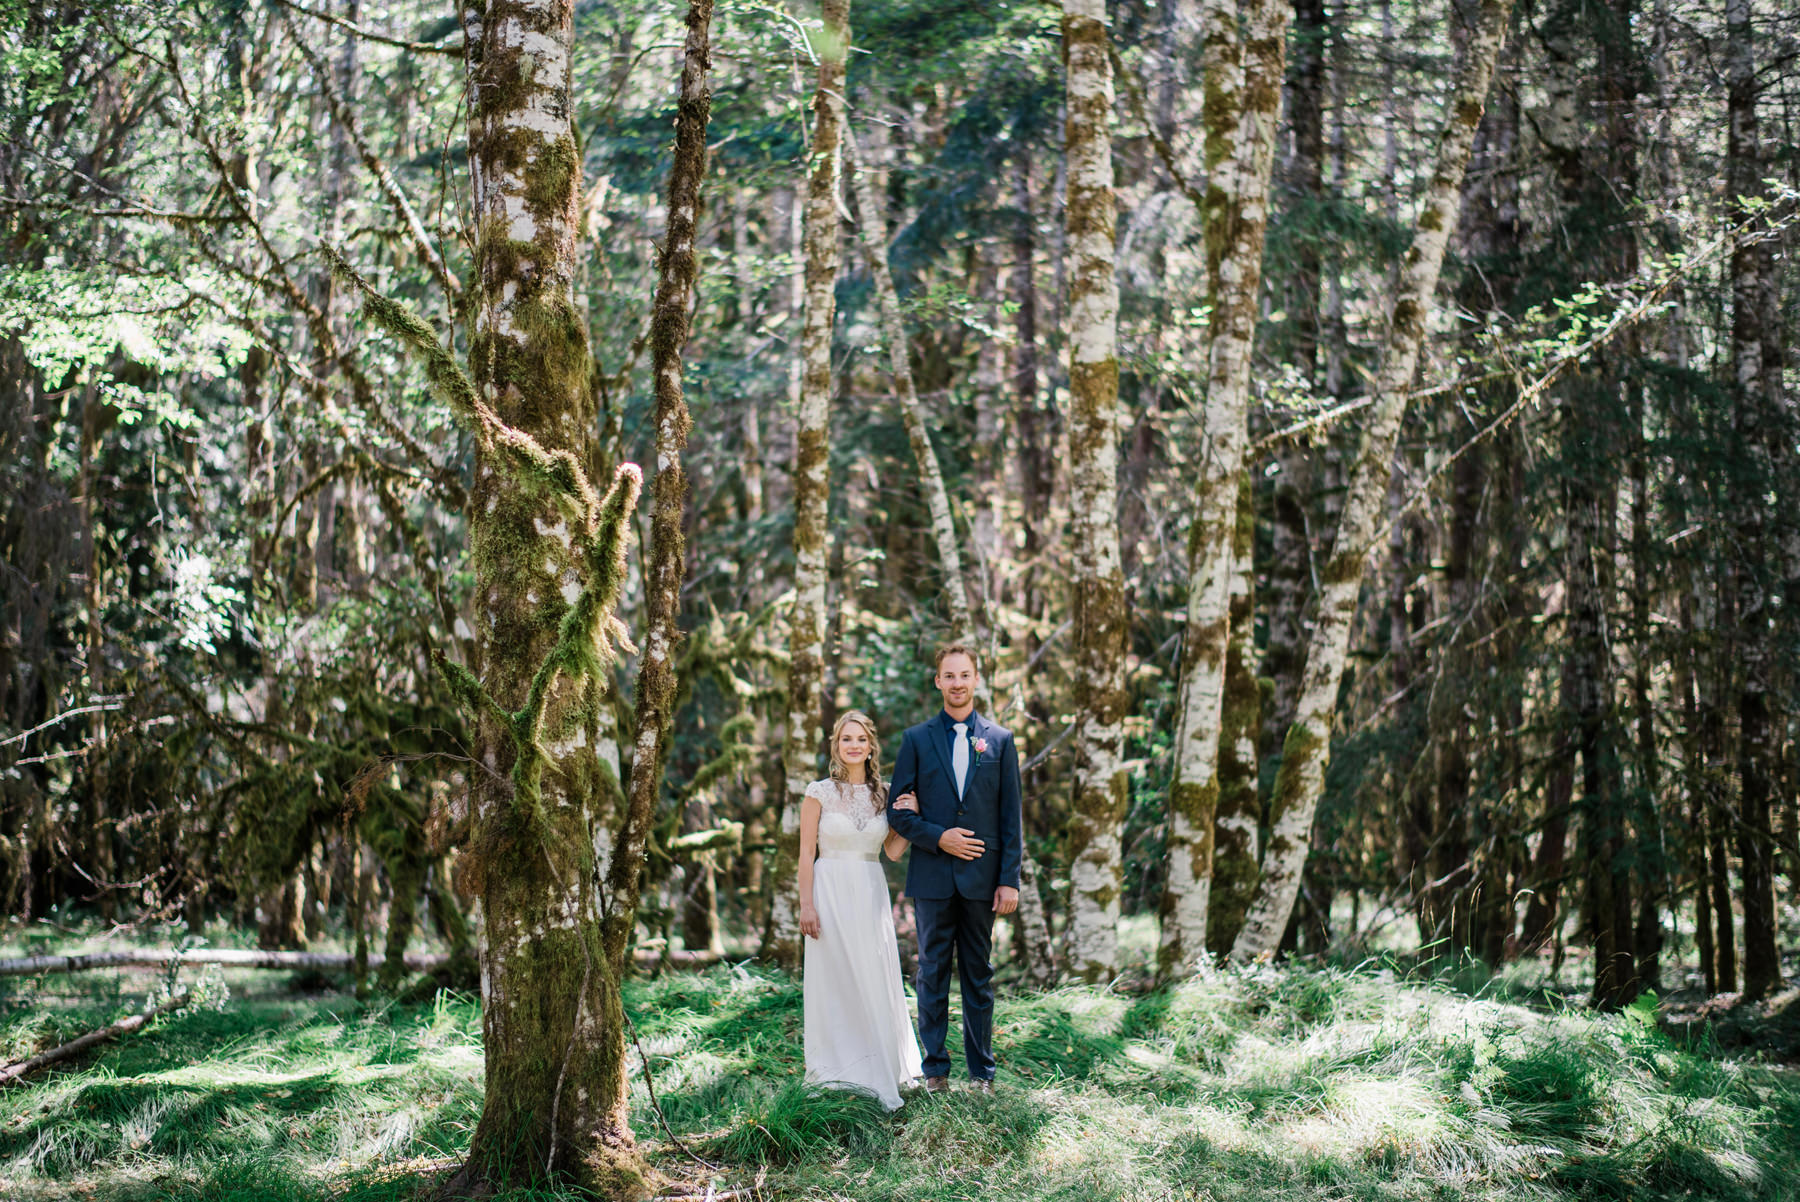 167-fine-art-film-wedding-portraits-at-nature-bride-near-the-lake-crescent-lodge.jpg